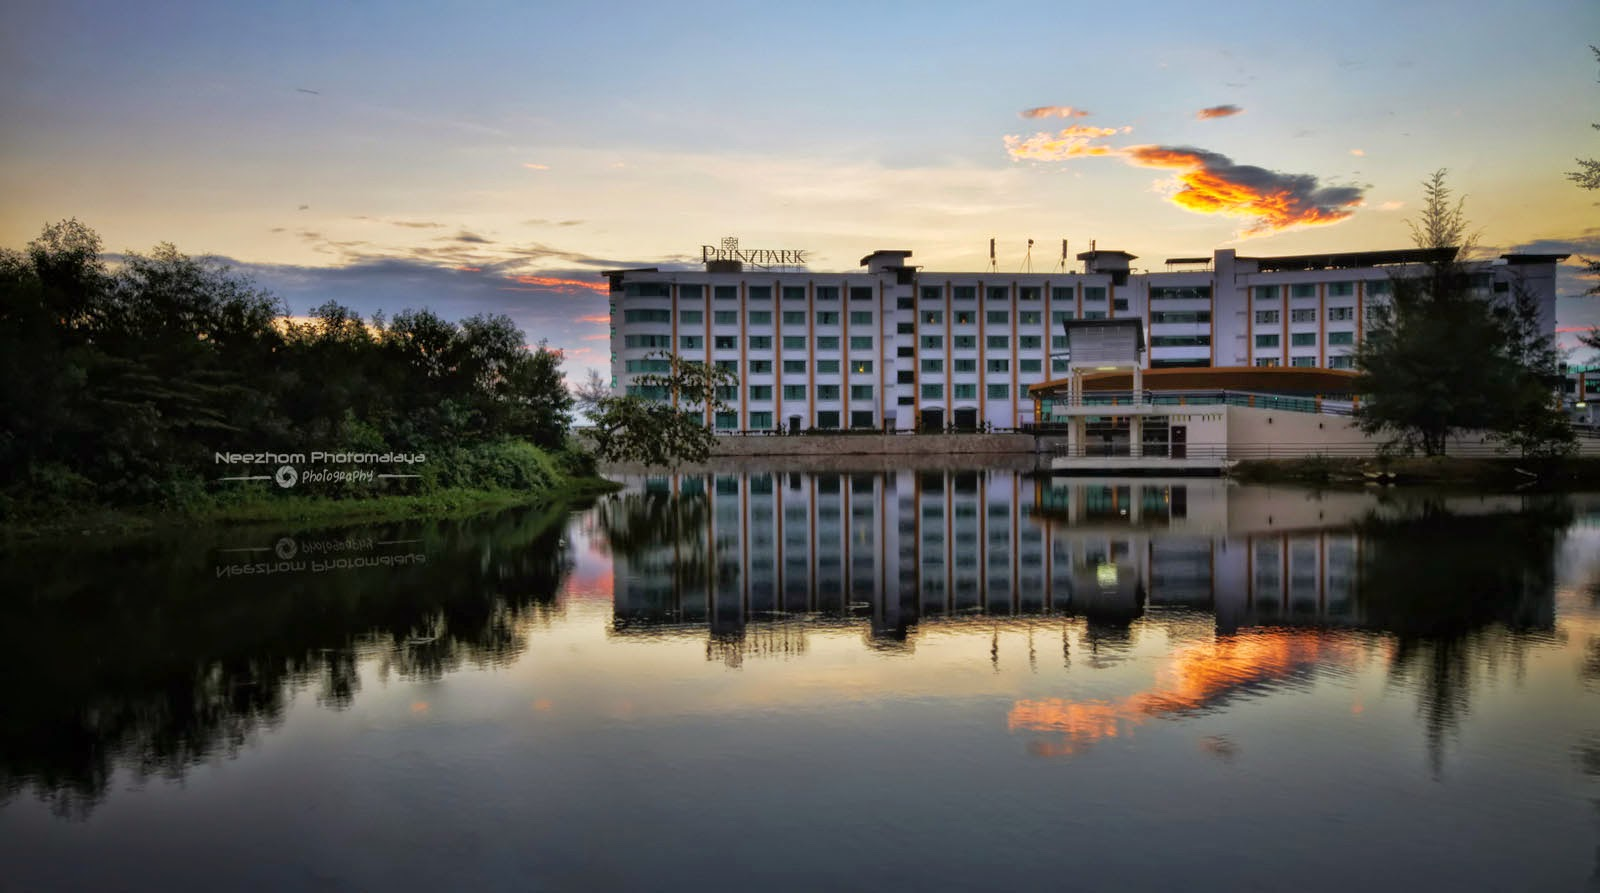 Prinzpark hotel, reflection and Sunrise